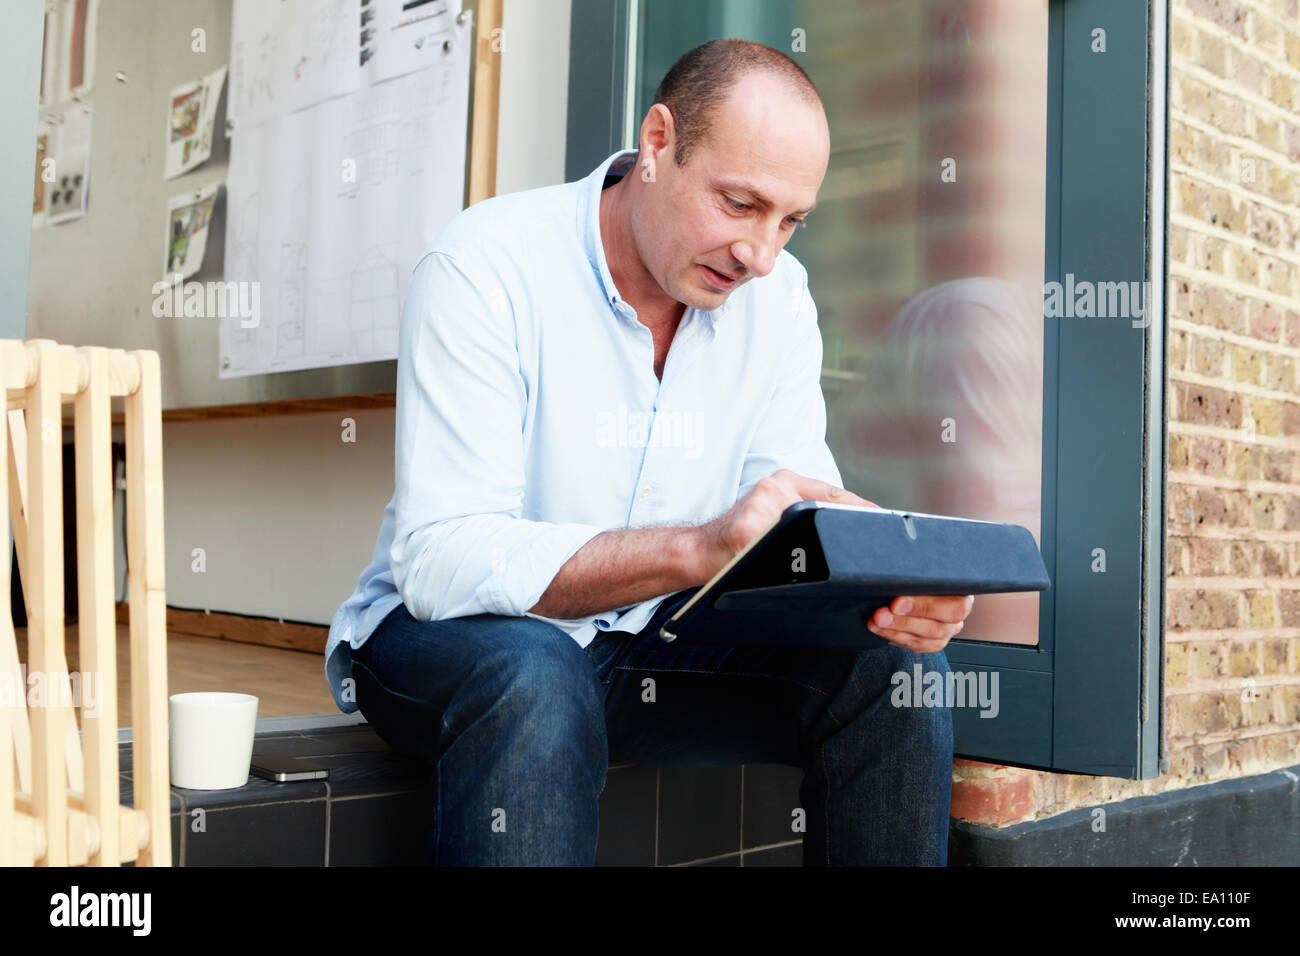 Male architect using touchscreen on digital tablet on office step Stock Photo